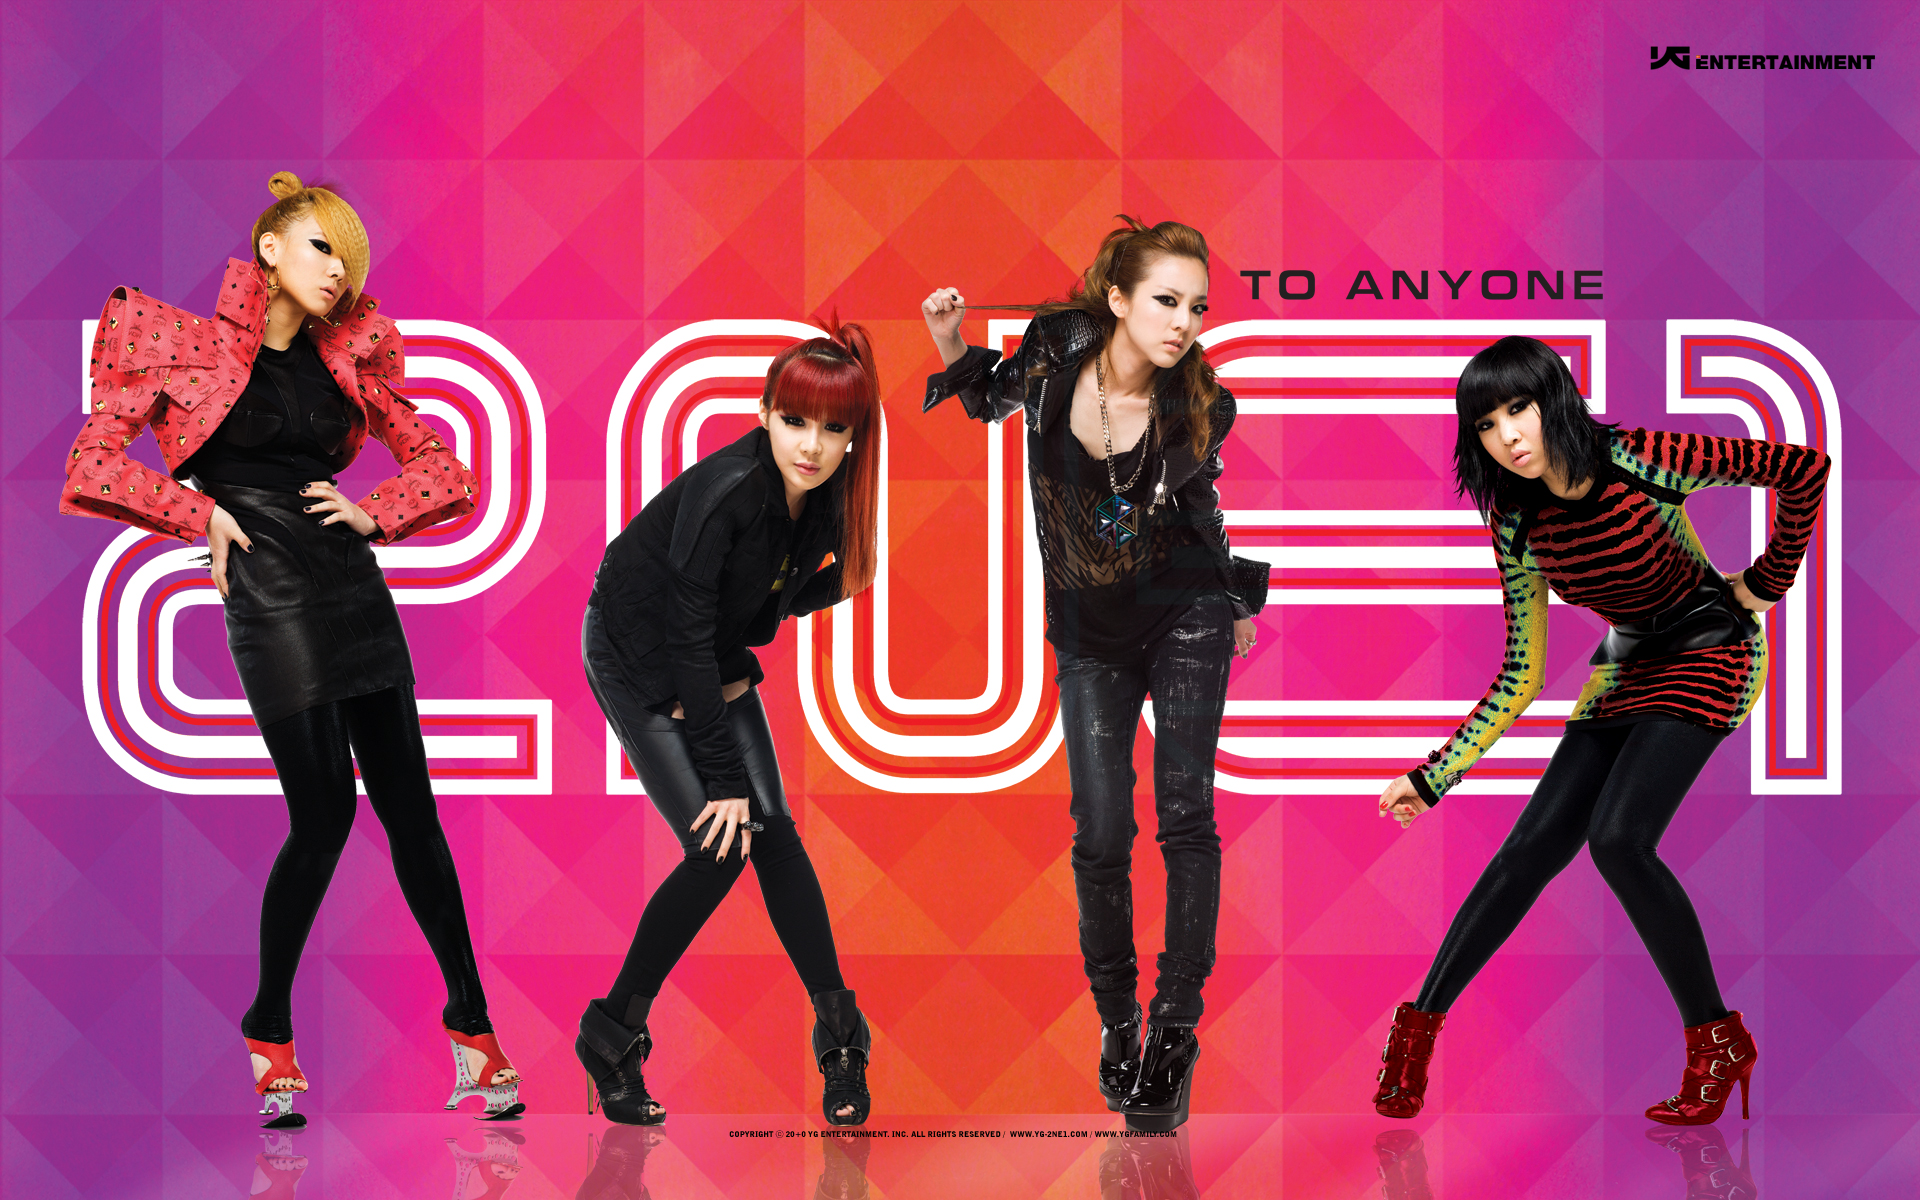 2ne1 Wallpaper Pinterest